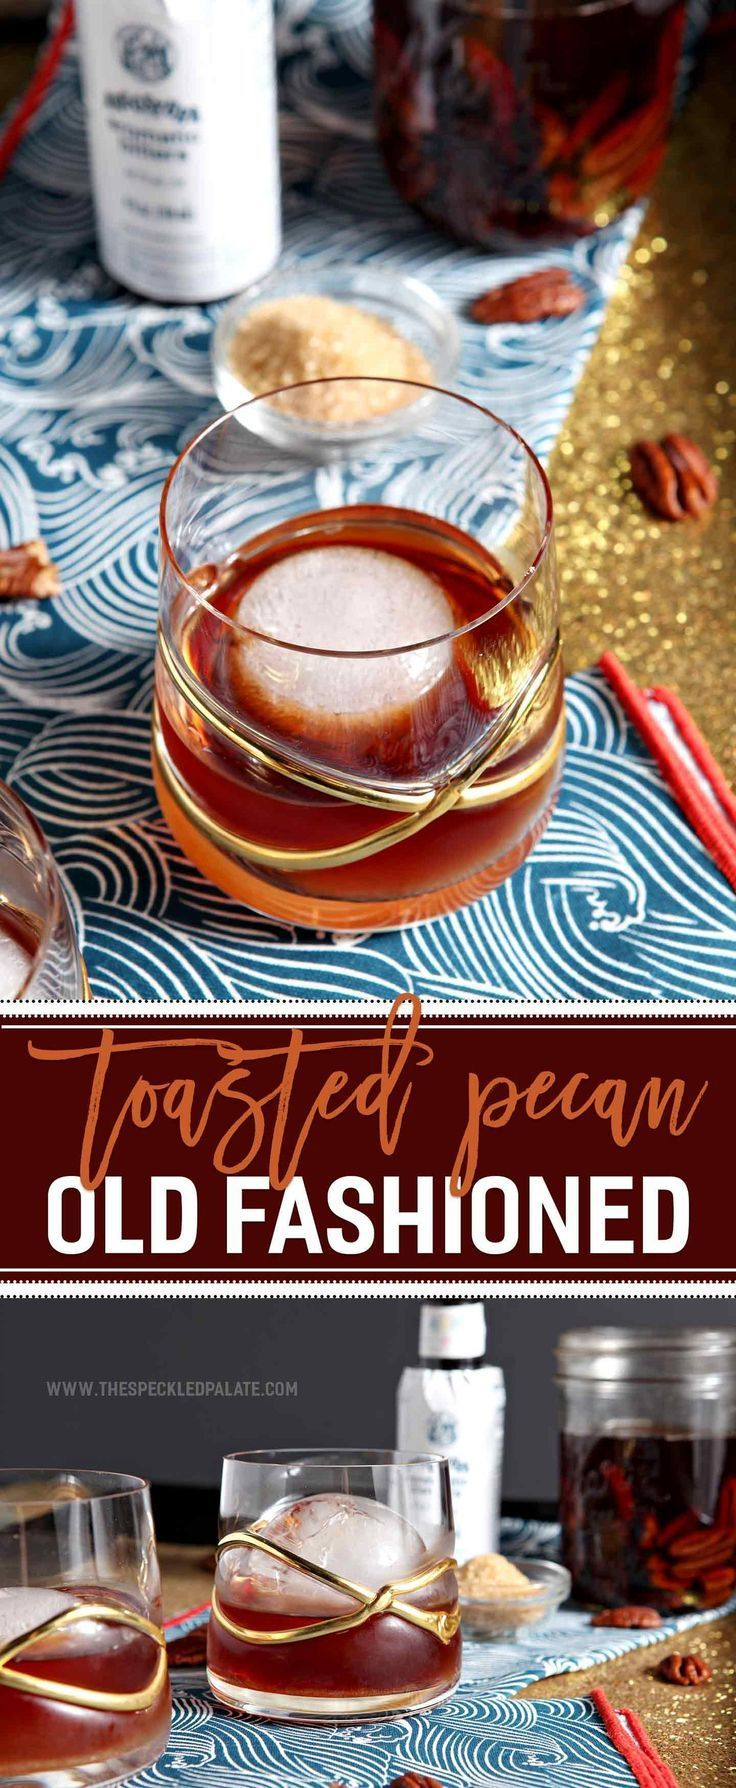 A seasonal twist on the classic whiskey cocktail, the Toasted Pecan Old Fashioned is a perfect cocktail for a chilly winter night. Toasted pecans soak in whiskey for days before the infused alcohol is poured atop a sugar and bitter mixture to make an Old Fashioned.